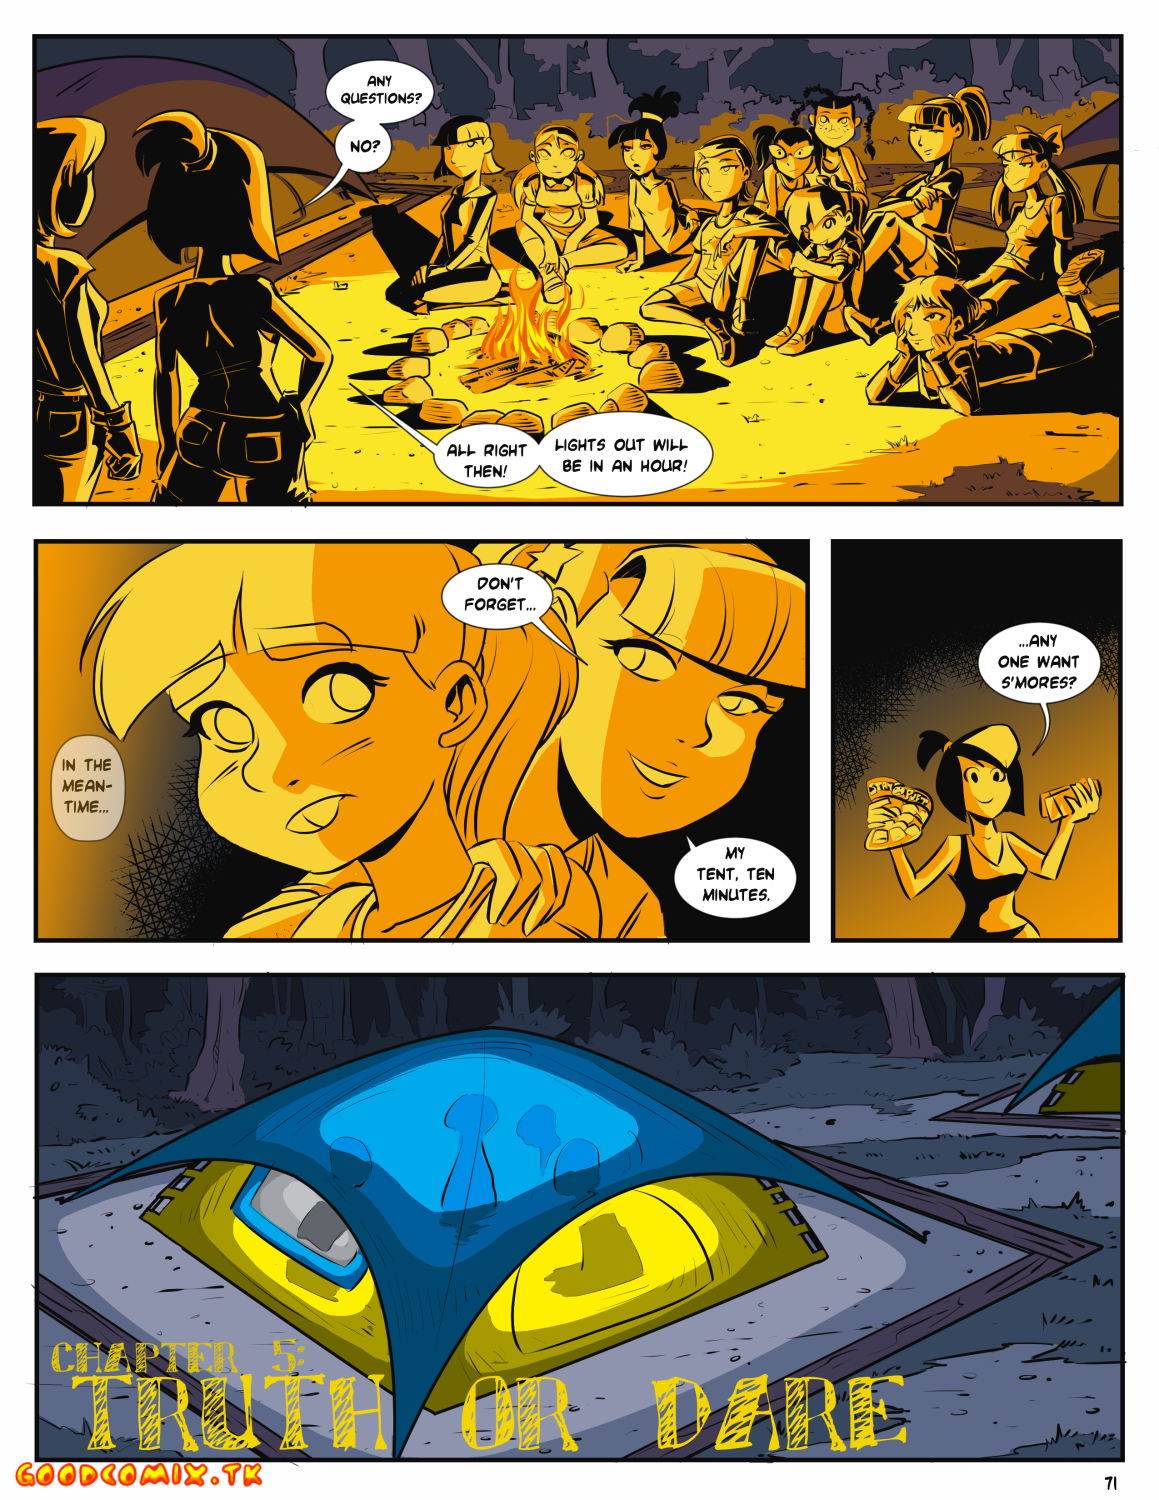 Goodcomix Crossover - [Mr.D] - Camp Sherwood - Ch.5 - Truth Or Dare